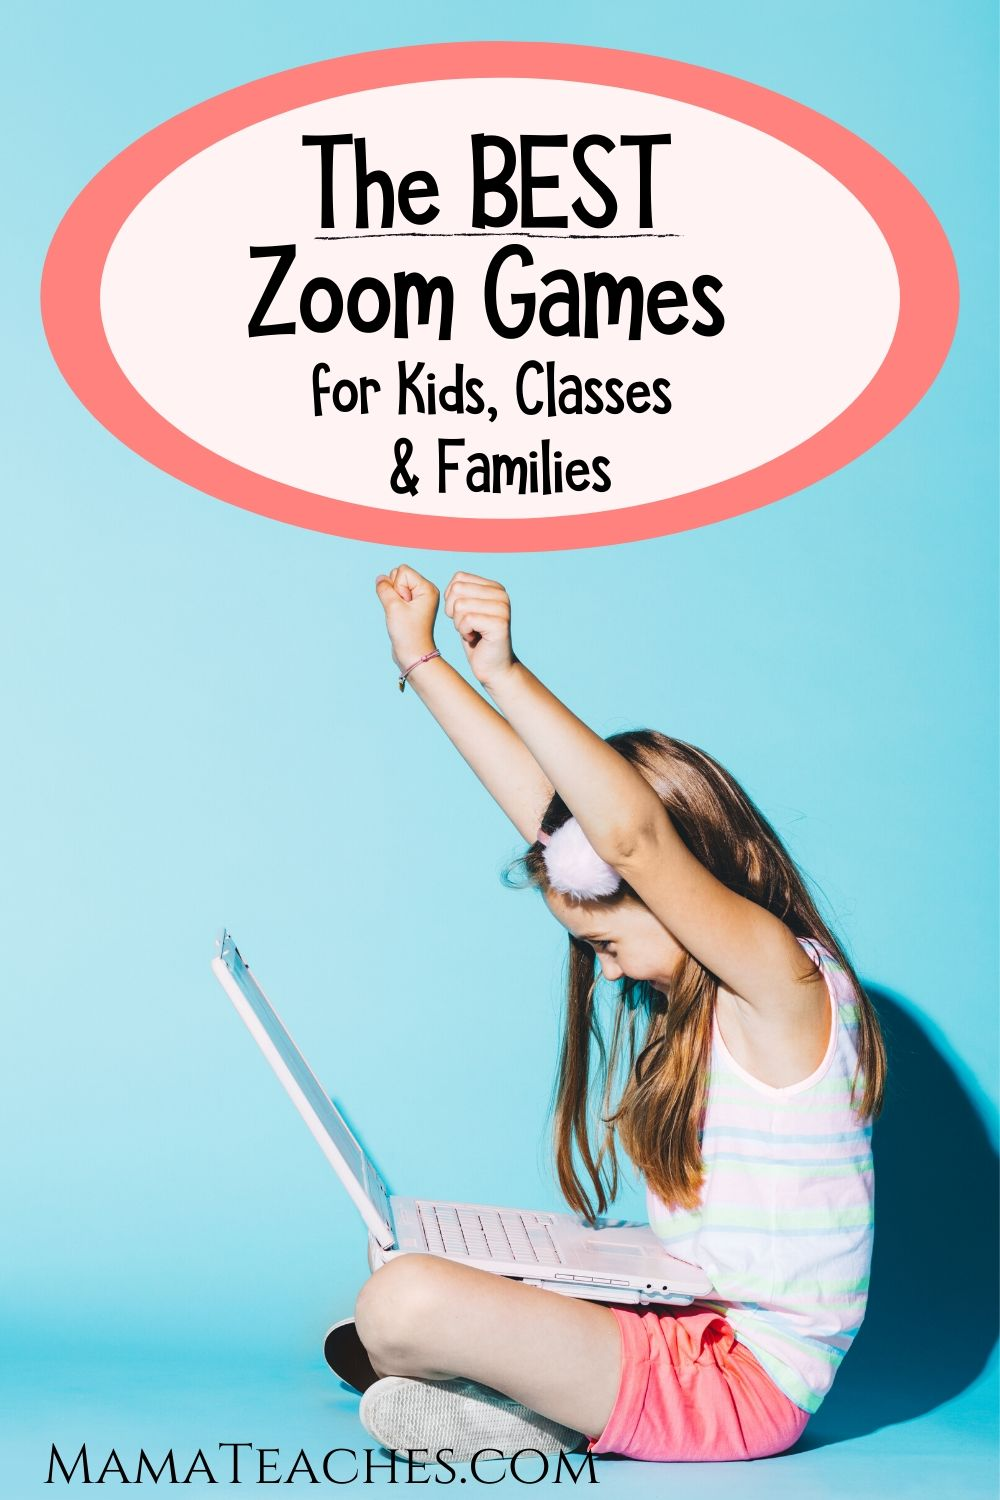 11 Best Games to Play on Zoom with Friends and Family